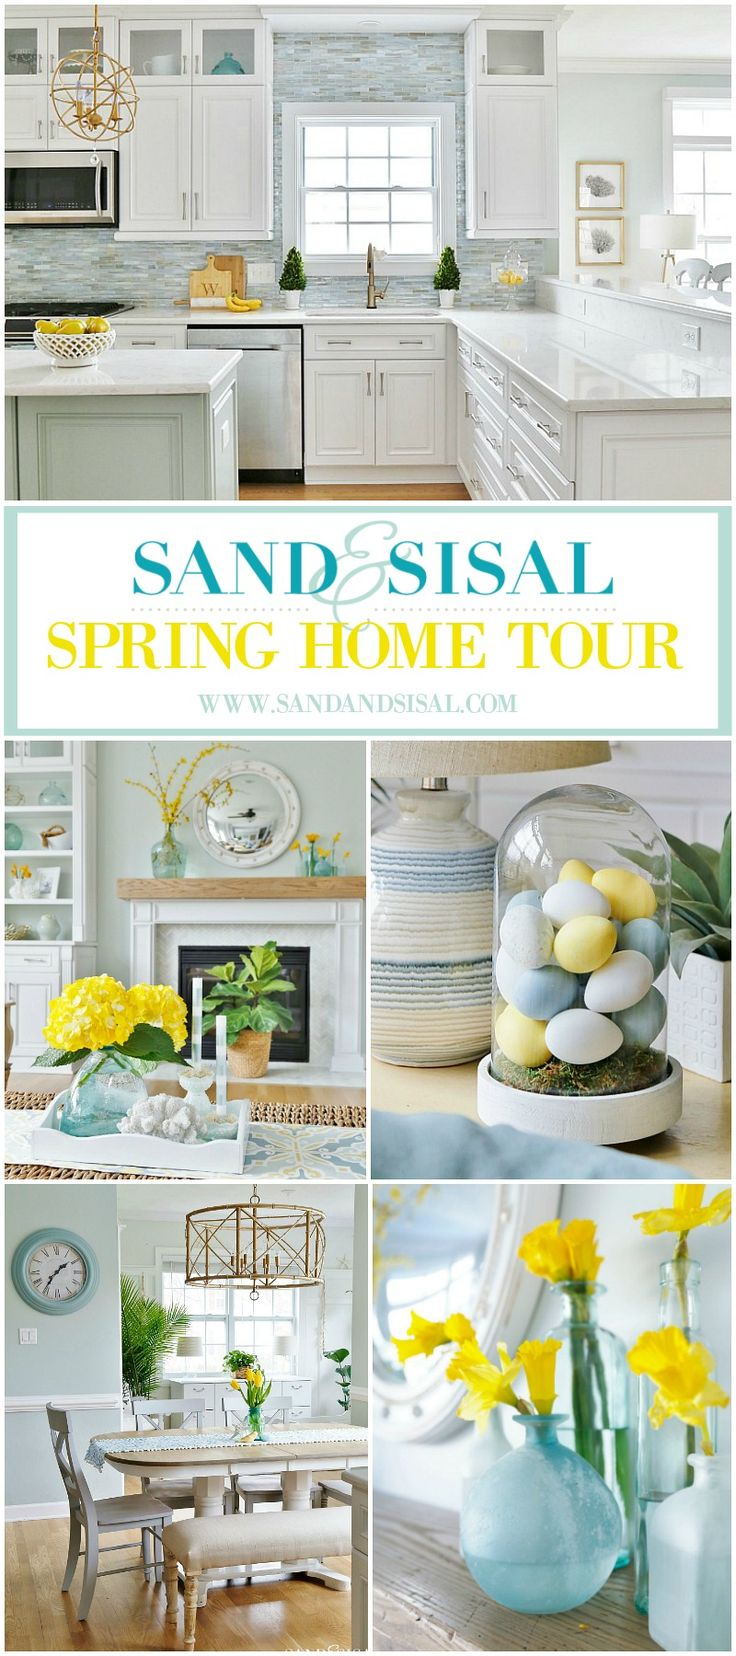 Sand & Sisal Spring Home Tour - LOVE it, yellow hydrangeas and all!